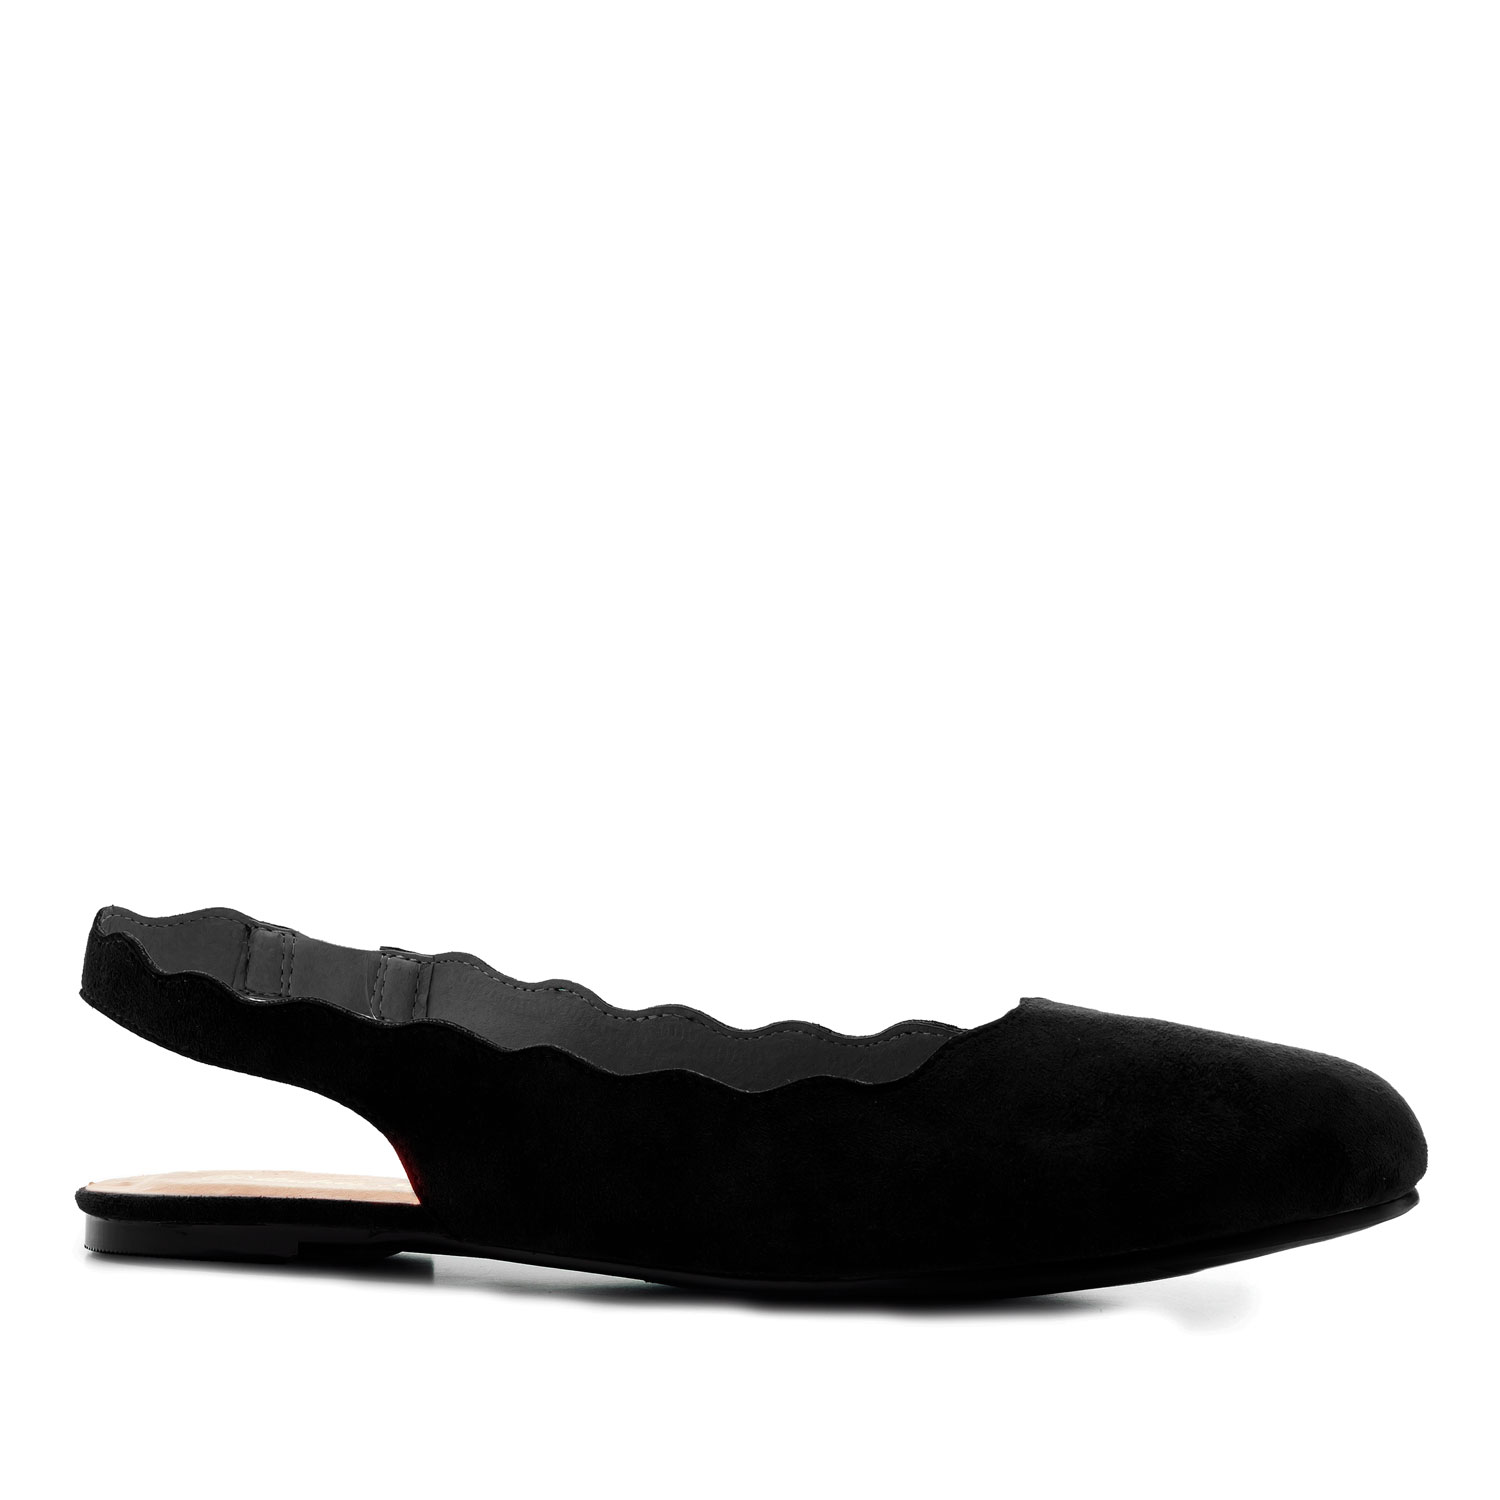 Wavy Slingback Flats in Black Suede